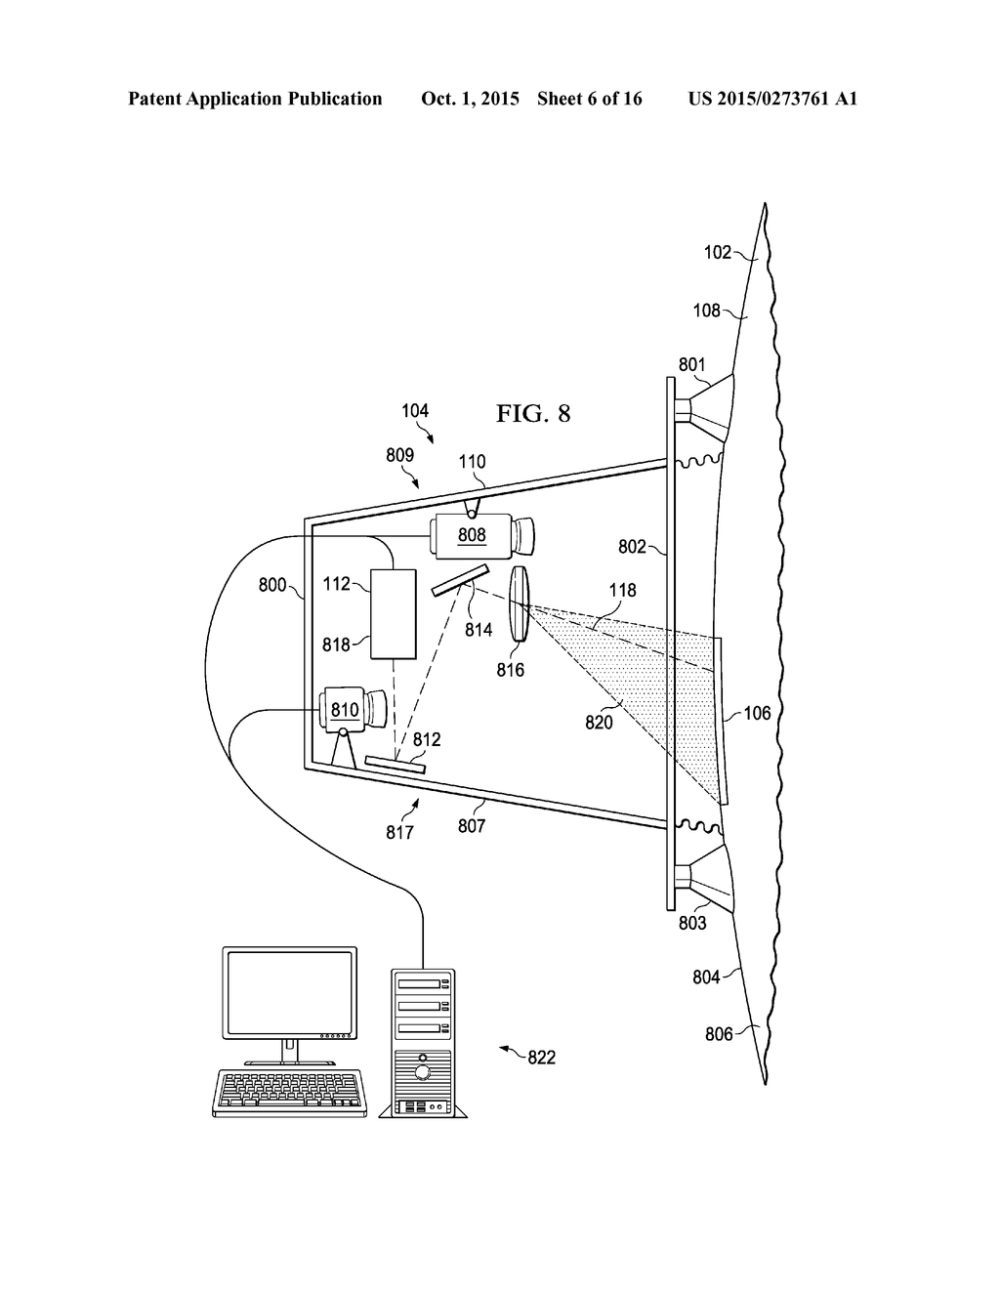 medium resolution of heating system for composite rework of aircraft diagram schematic and image 07